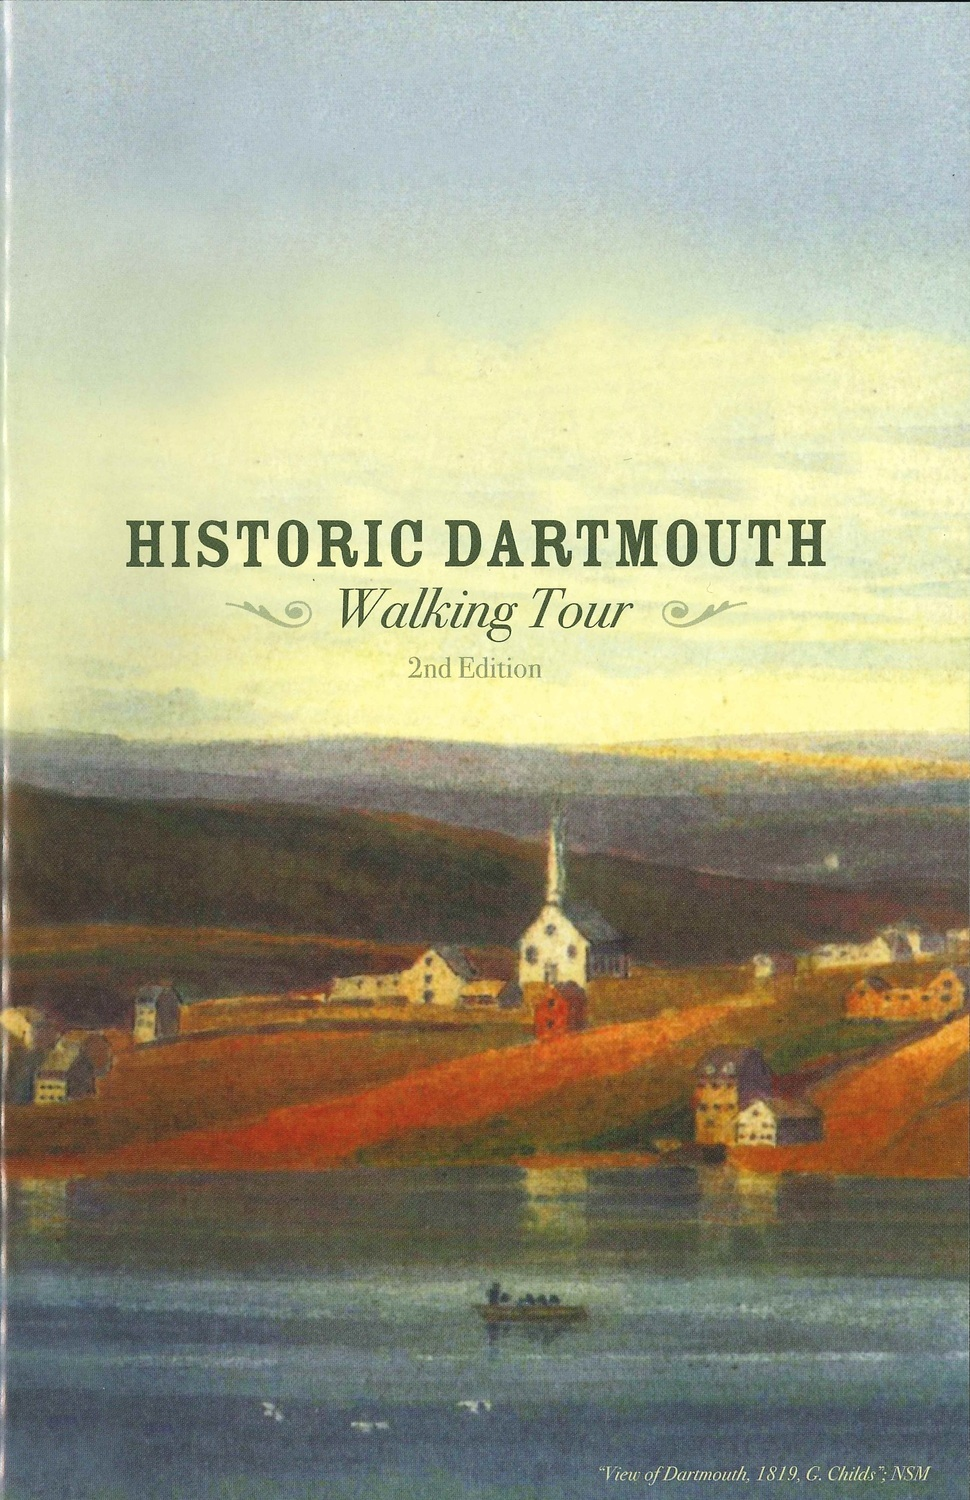 Historic Dartmouth Walking Tour